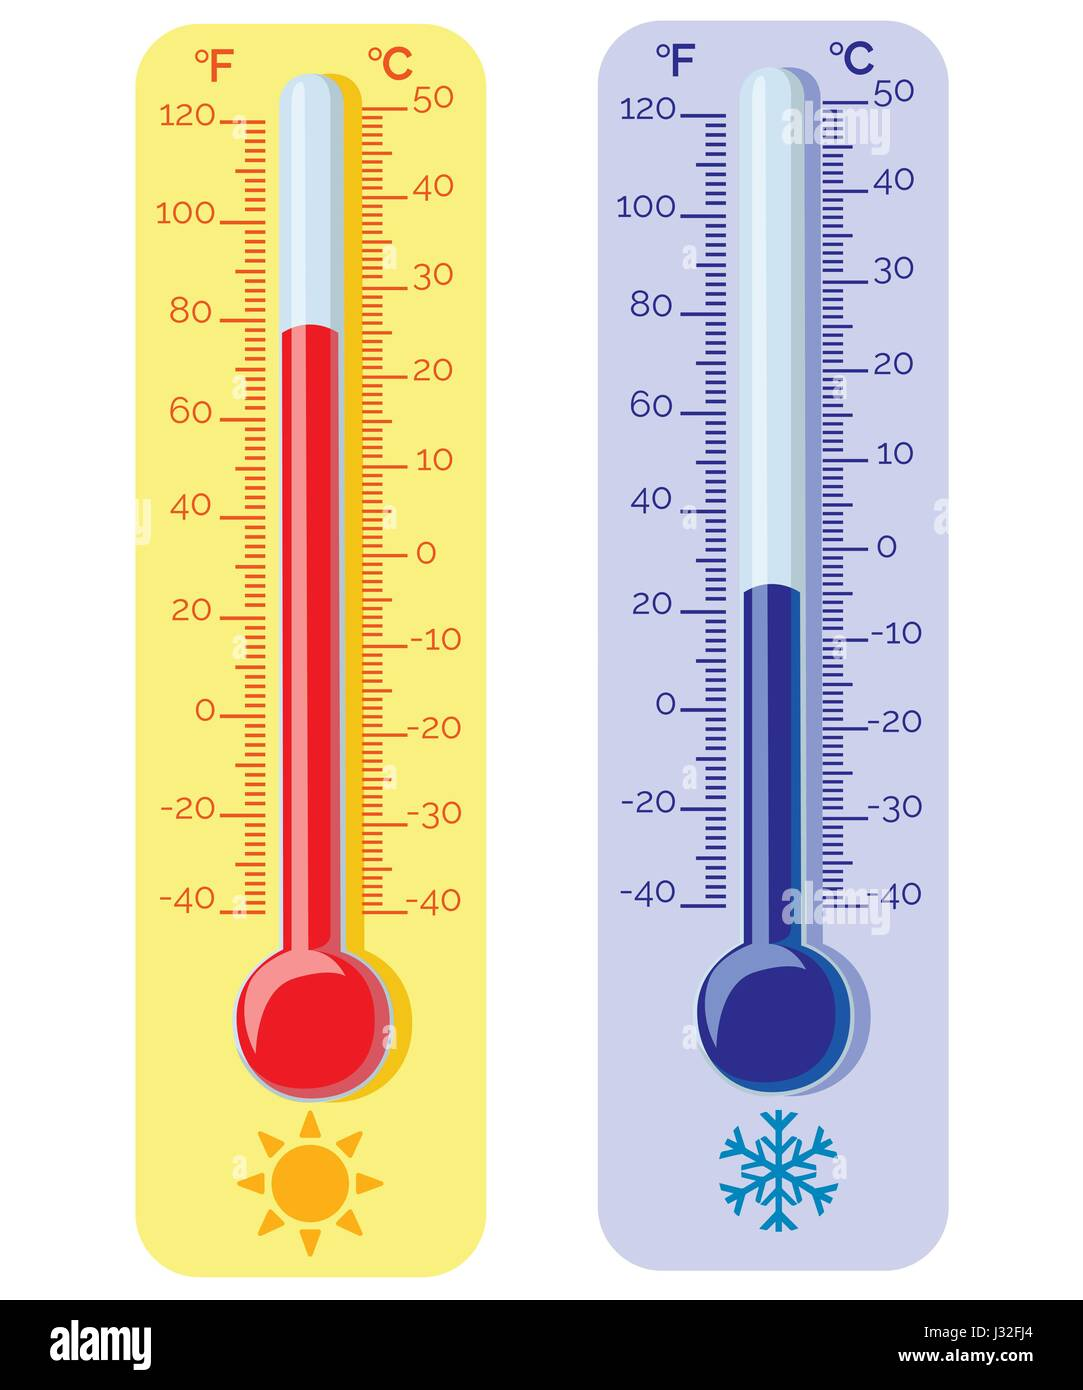 Thermometer Equipment Showing Hot Or Cold Weather Celsius